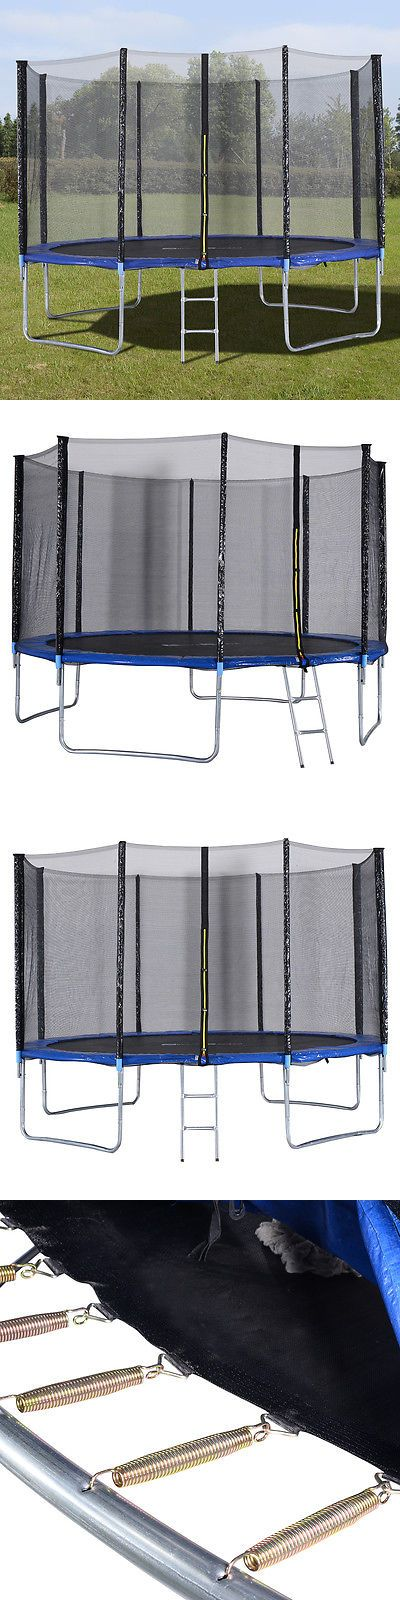 Trampolines 57275: 12 Ft Trampoline Combo Bounce Jump Safety Enclosure Net W/Spring Pad Ladder New BUY IT NOW ONLY: $209.99